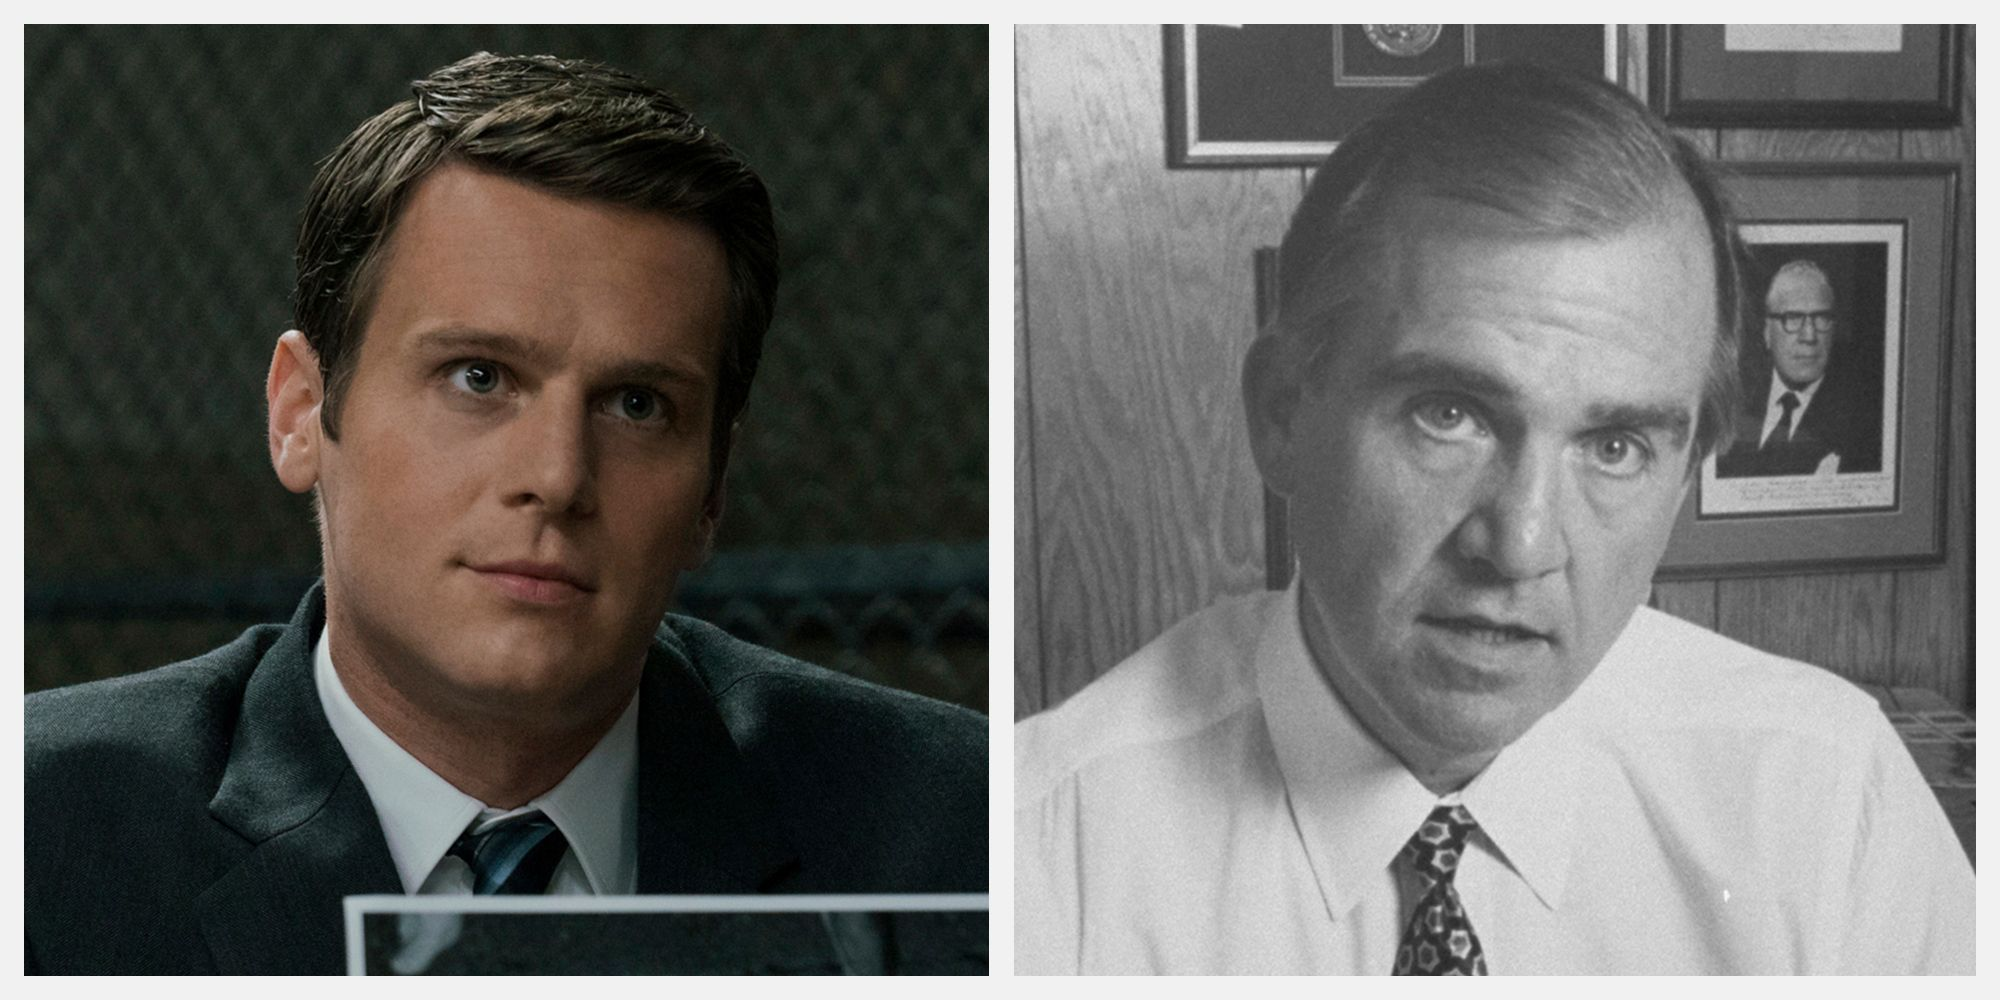 How the Mindhunter Cast Compares to the Real-Life People They're Based On